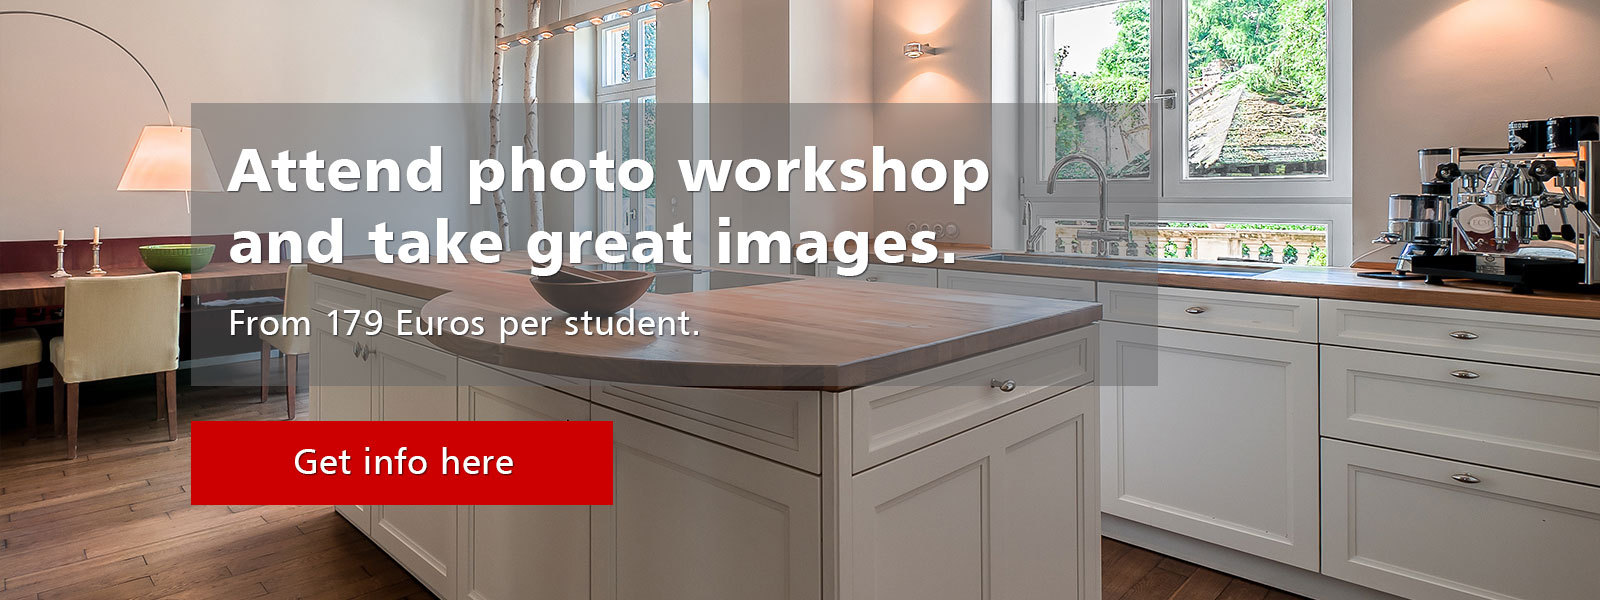 Better real estate photos after workshop with PrimePhoto.